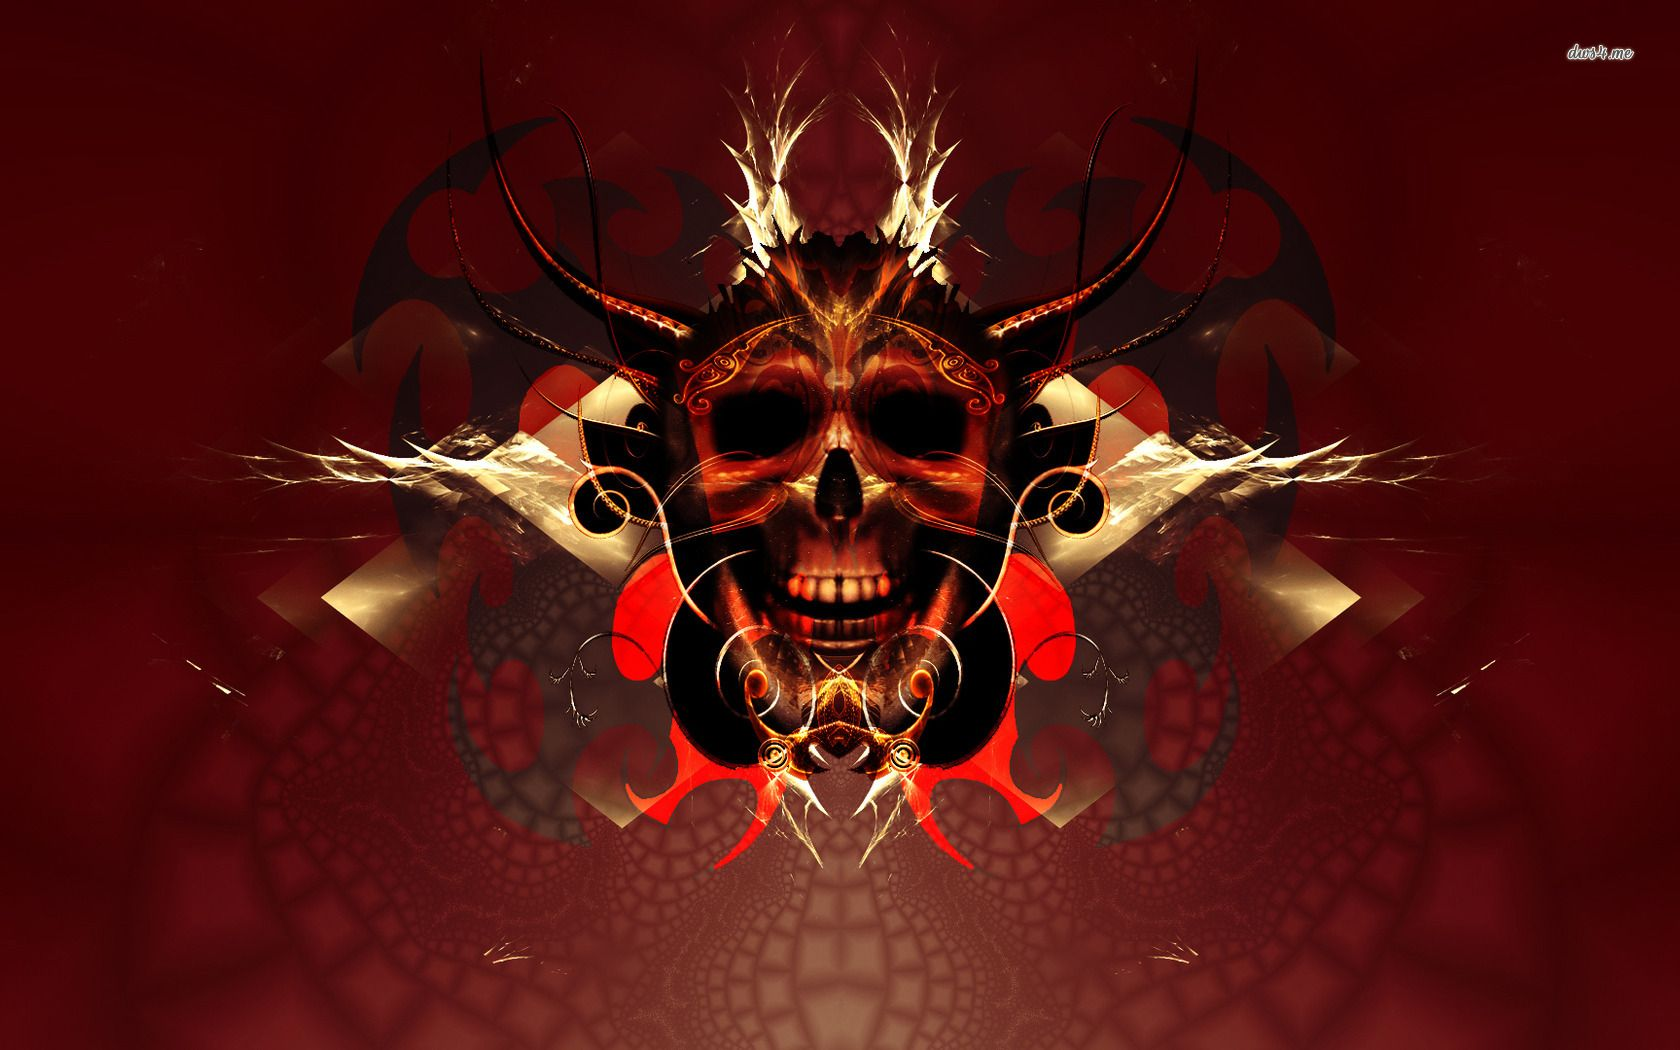 Red Skull Wallpaper Image Cool Punk Wallpaper For Guys 1680 1050 Red And Black Skull Wallpapers 44 Wall Black Skulls Wallpaper Skull Wallpaper Skull Pictures